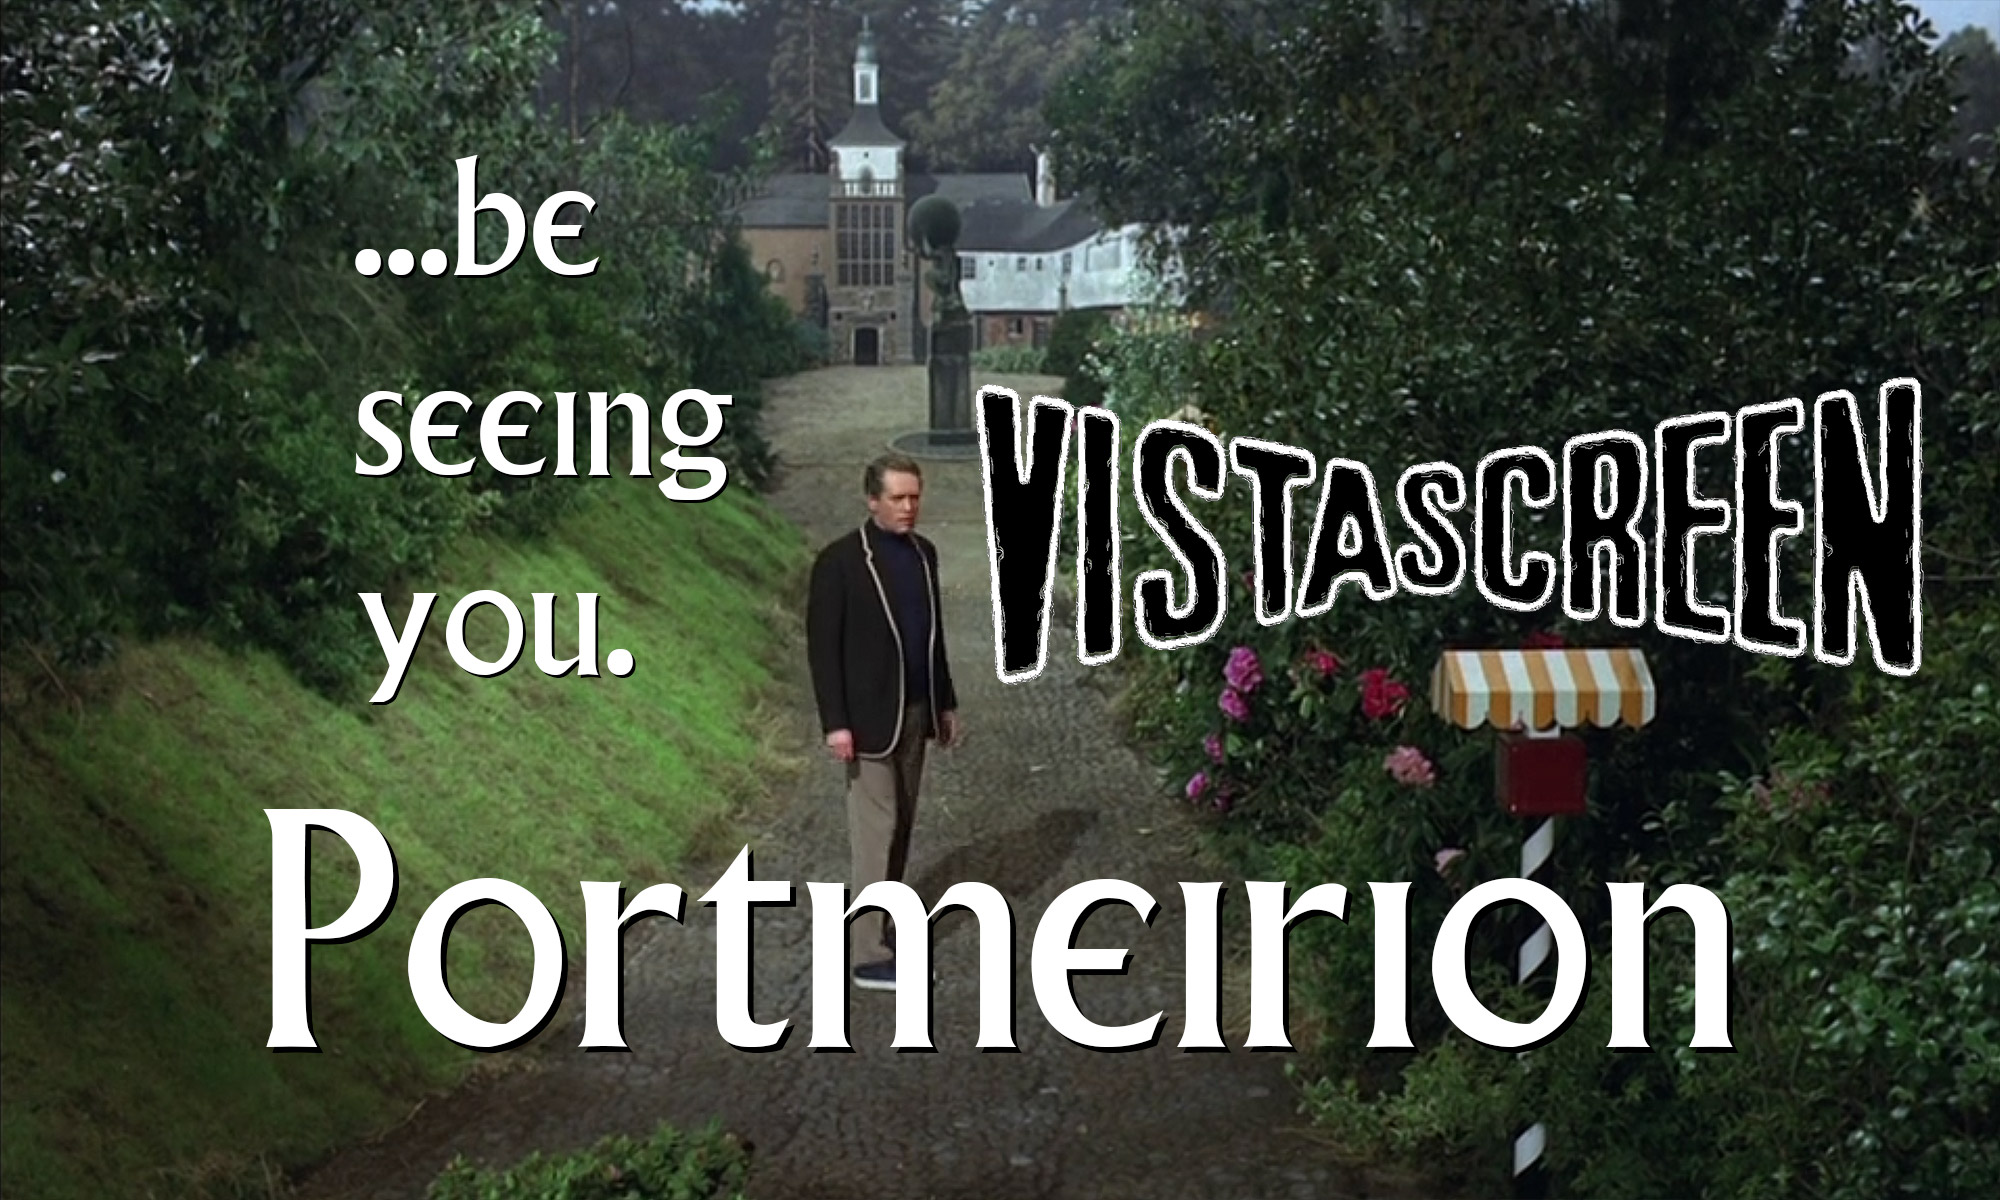 Be Seeing You: Portmeirion, The Village from The Prisoner